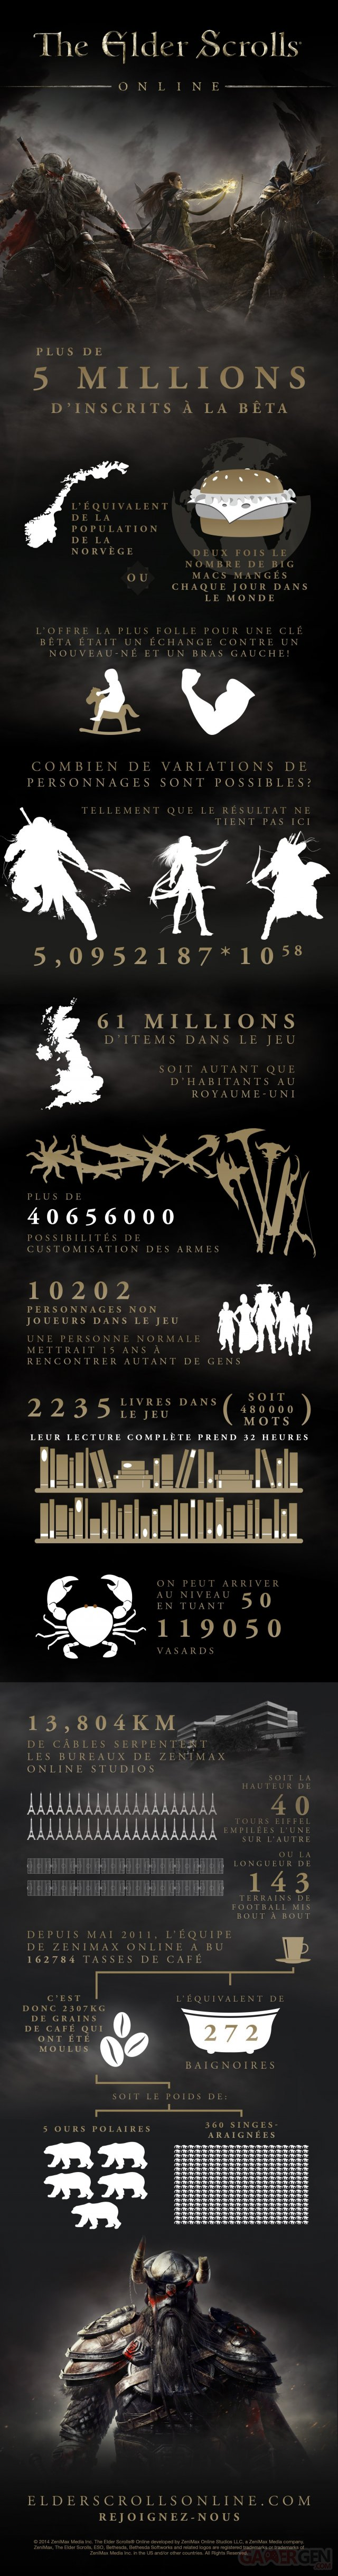 The Elder Scrolls Online infographic_French